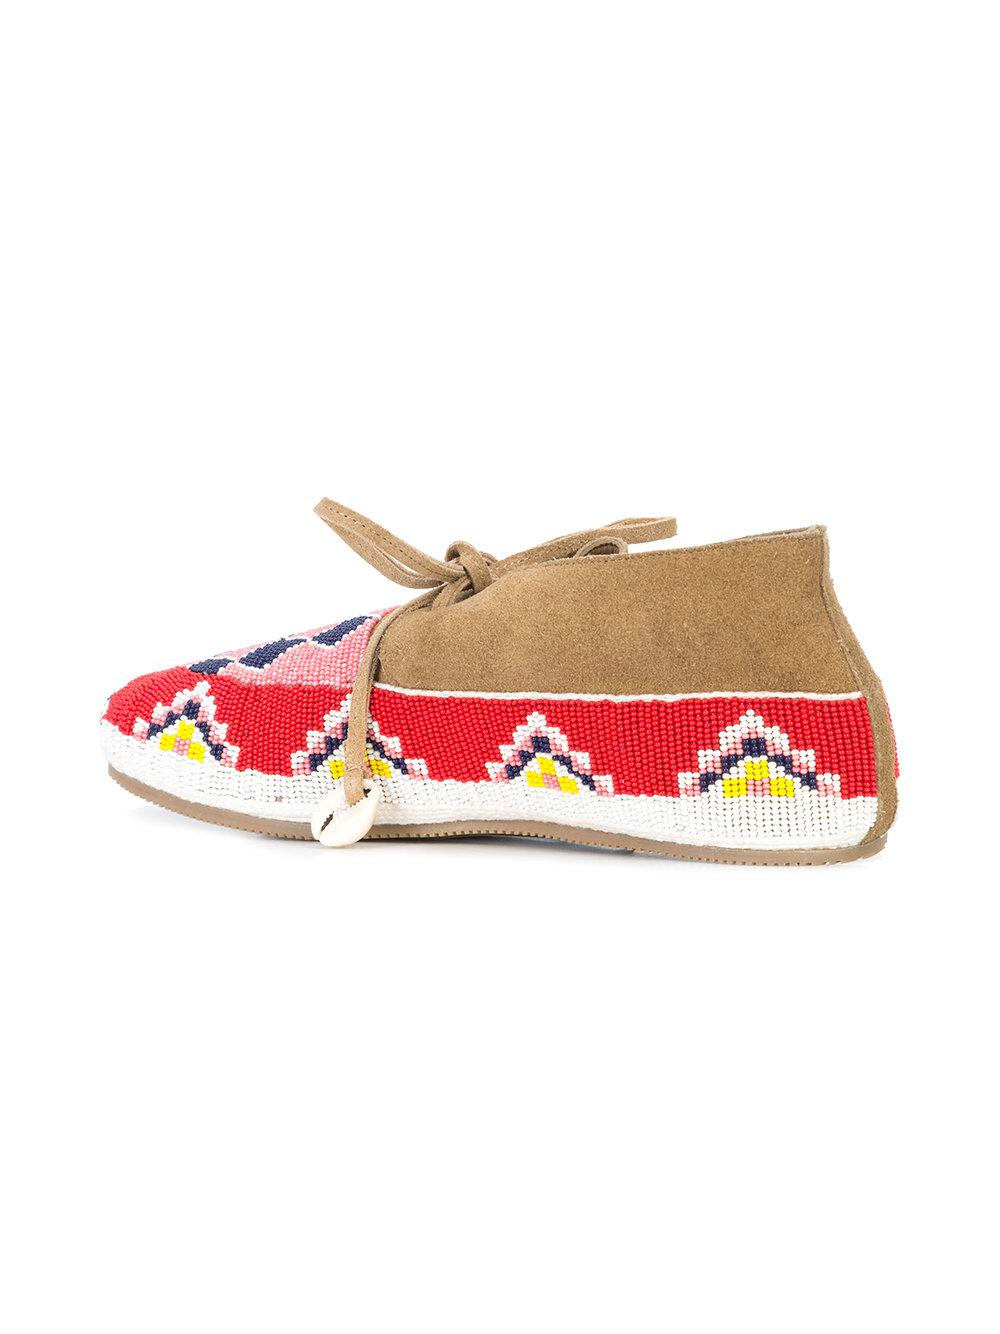 Figue moccasin slip-on sneakers popular for sale low cost cheap price ZkLXAN